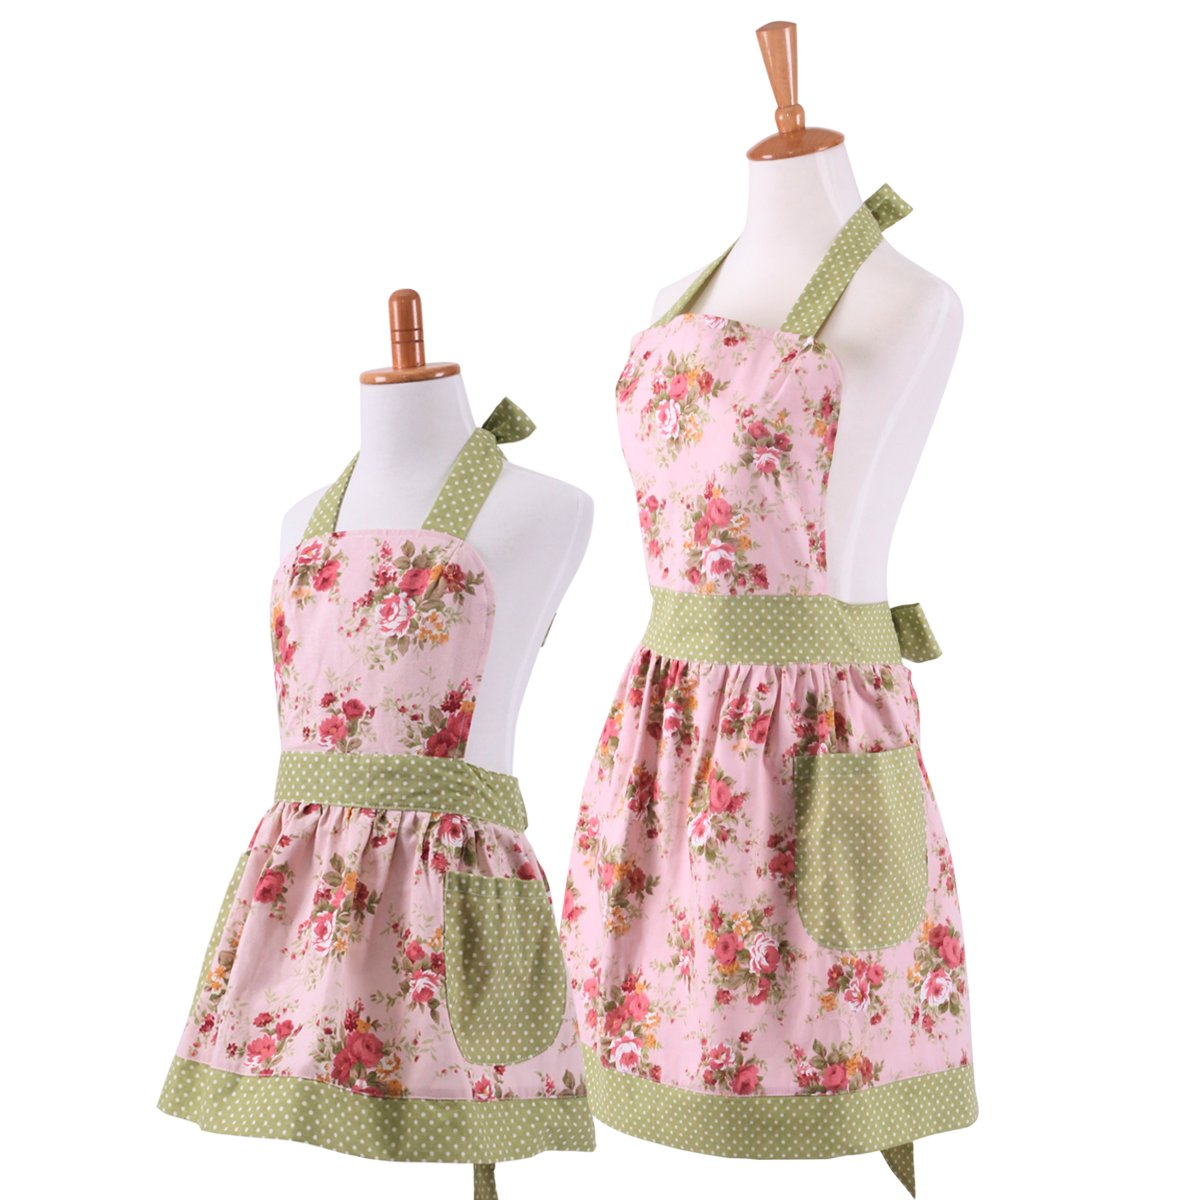 10 Things to Do with Vintage Aprons Neoviva Cotton Canvas Kitchen Apron for Women and Kid Girl Floral Pink  AT vintagedancer.com